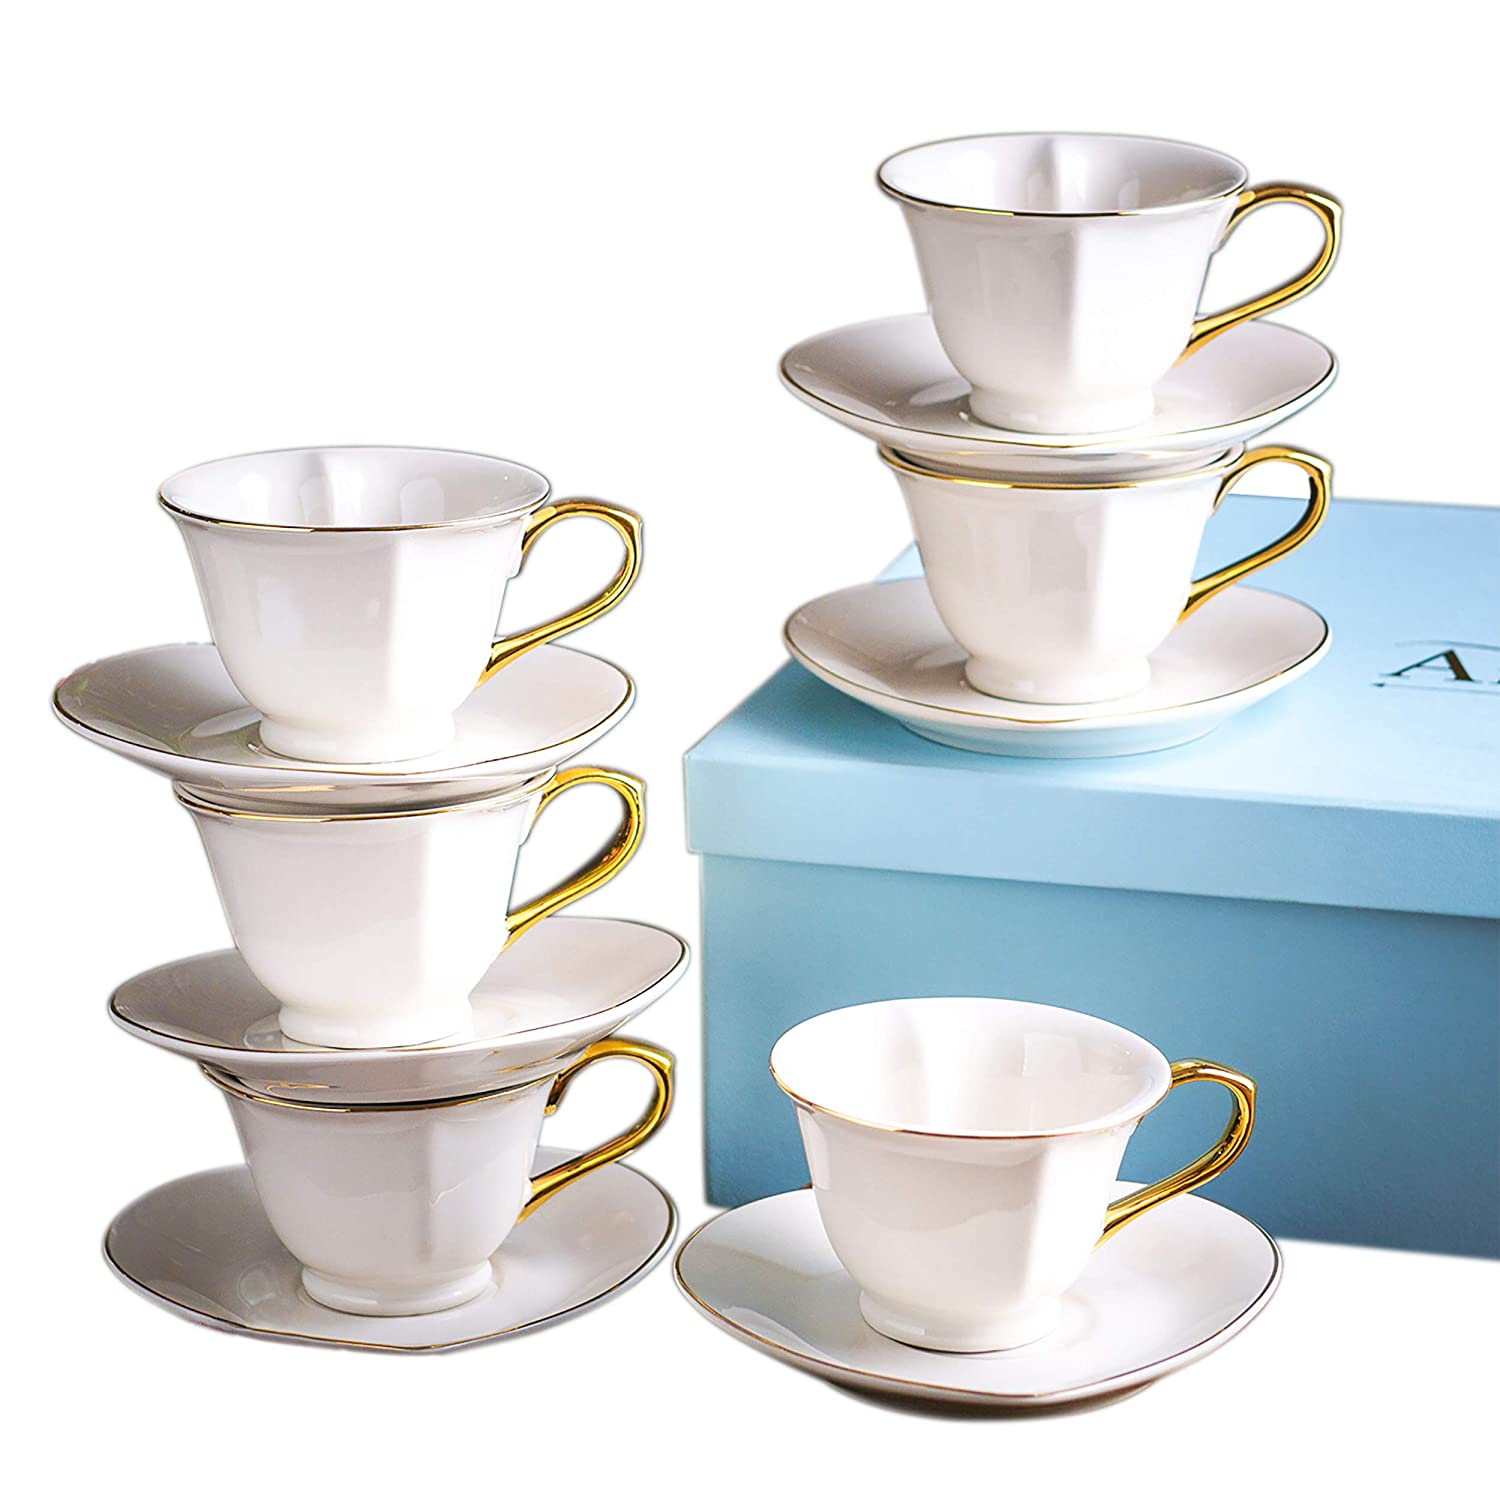 ARTVIGOR Porcelain Coffee Service in Gift Box Set of 12 Coffee Cups with Saucers White Tea Service with Gift Box for 6